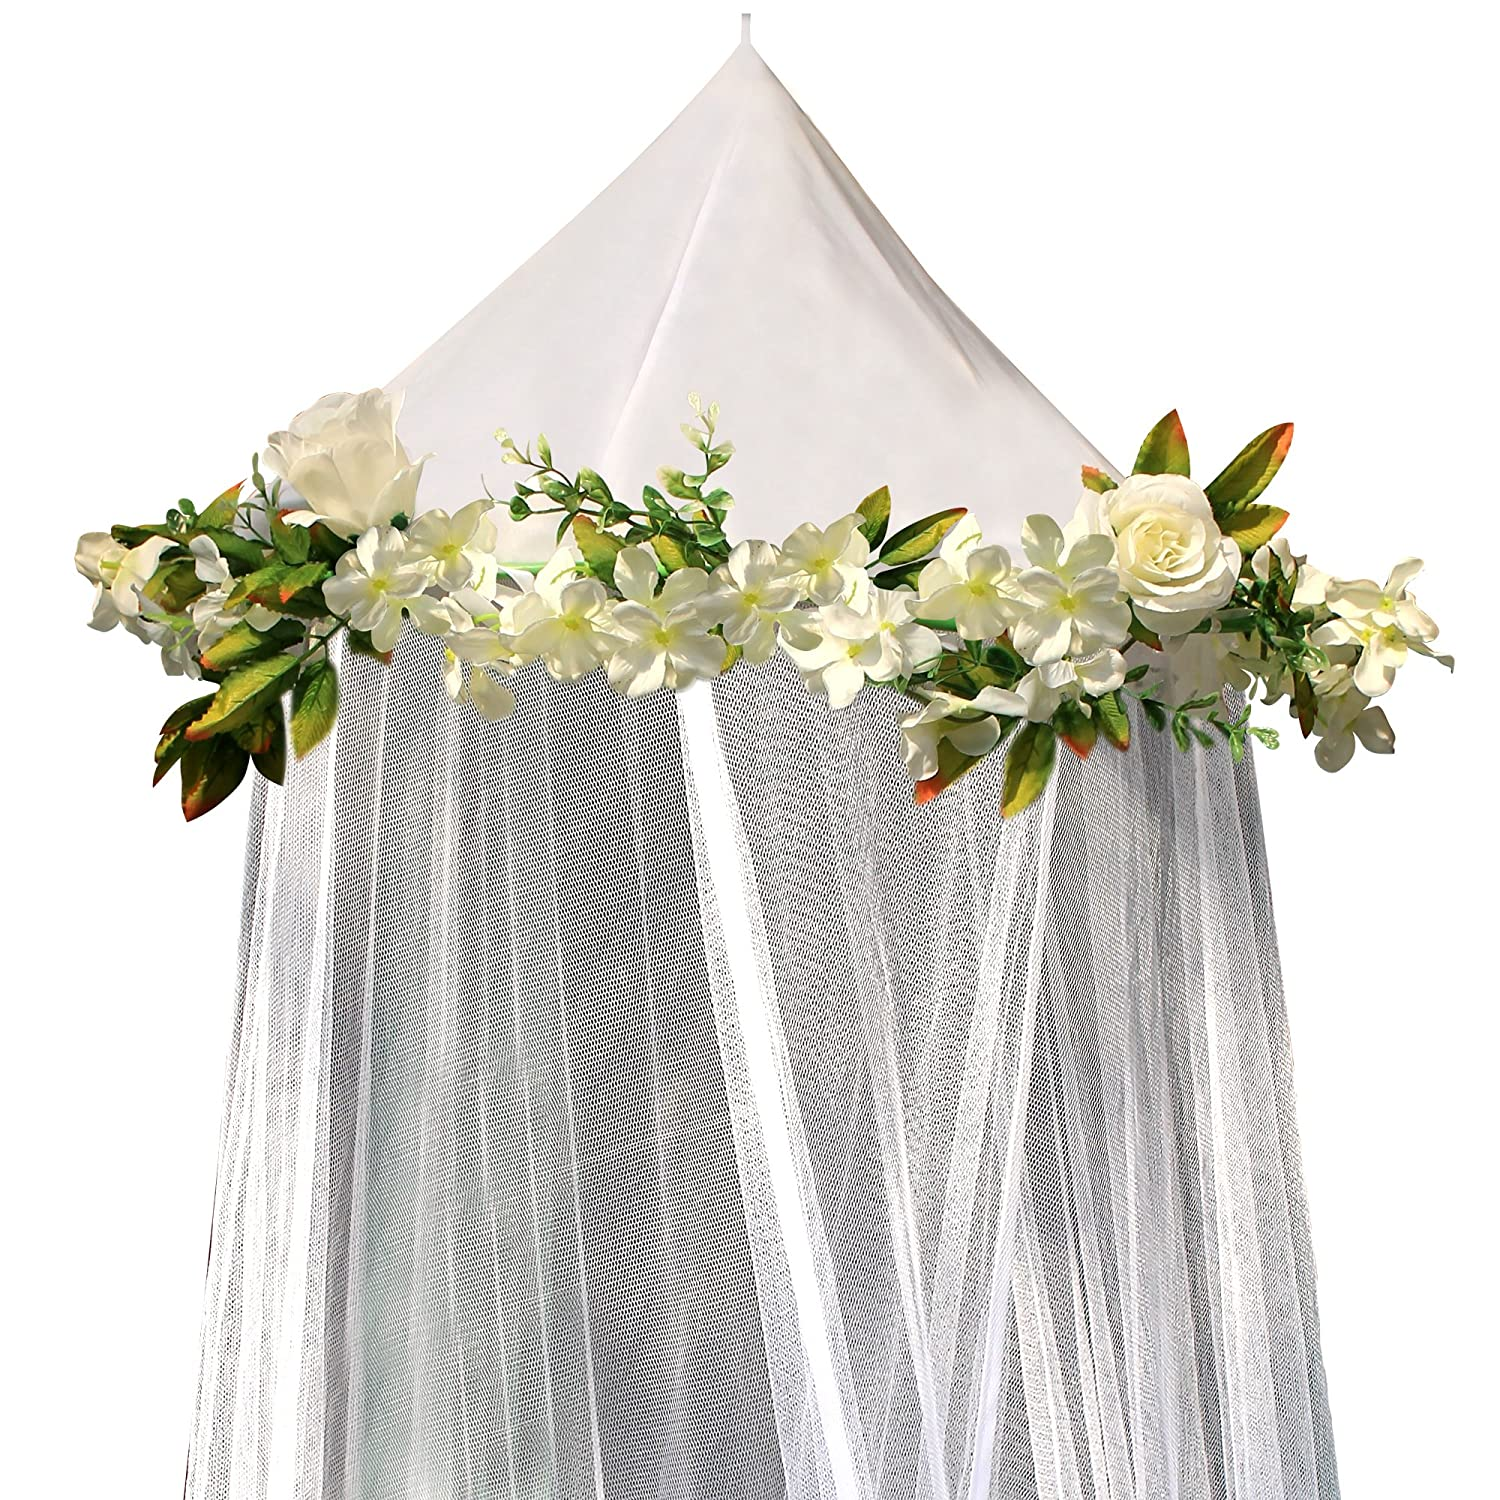 Bobo and Bee - Enchanted Bed Canopy Mosquito Net For Girls, Kids, Baby, With Detachable Cream Rose and Ivy Garland - Twin Size, White with Satin Trim - Perfect Boho Woodland Nursery Decor Wme Products Ltd 752589200059